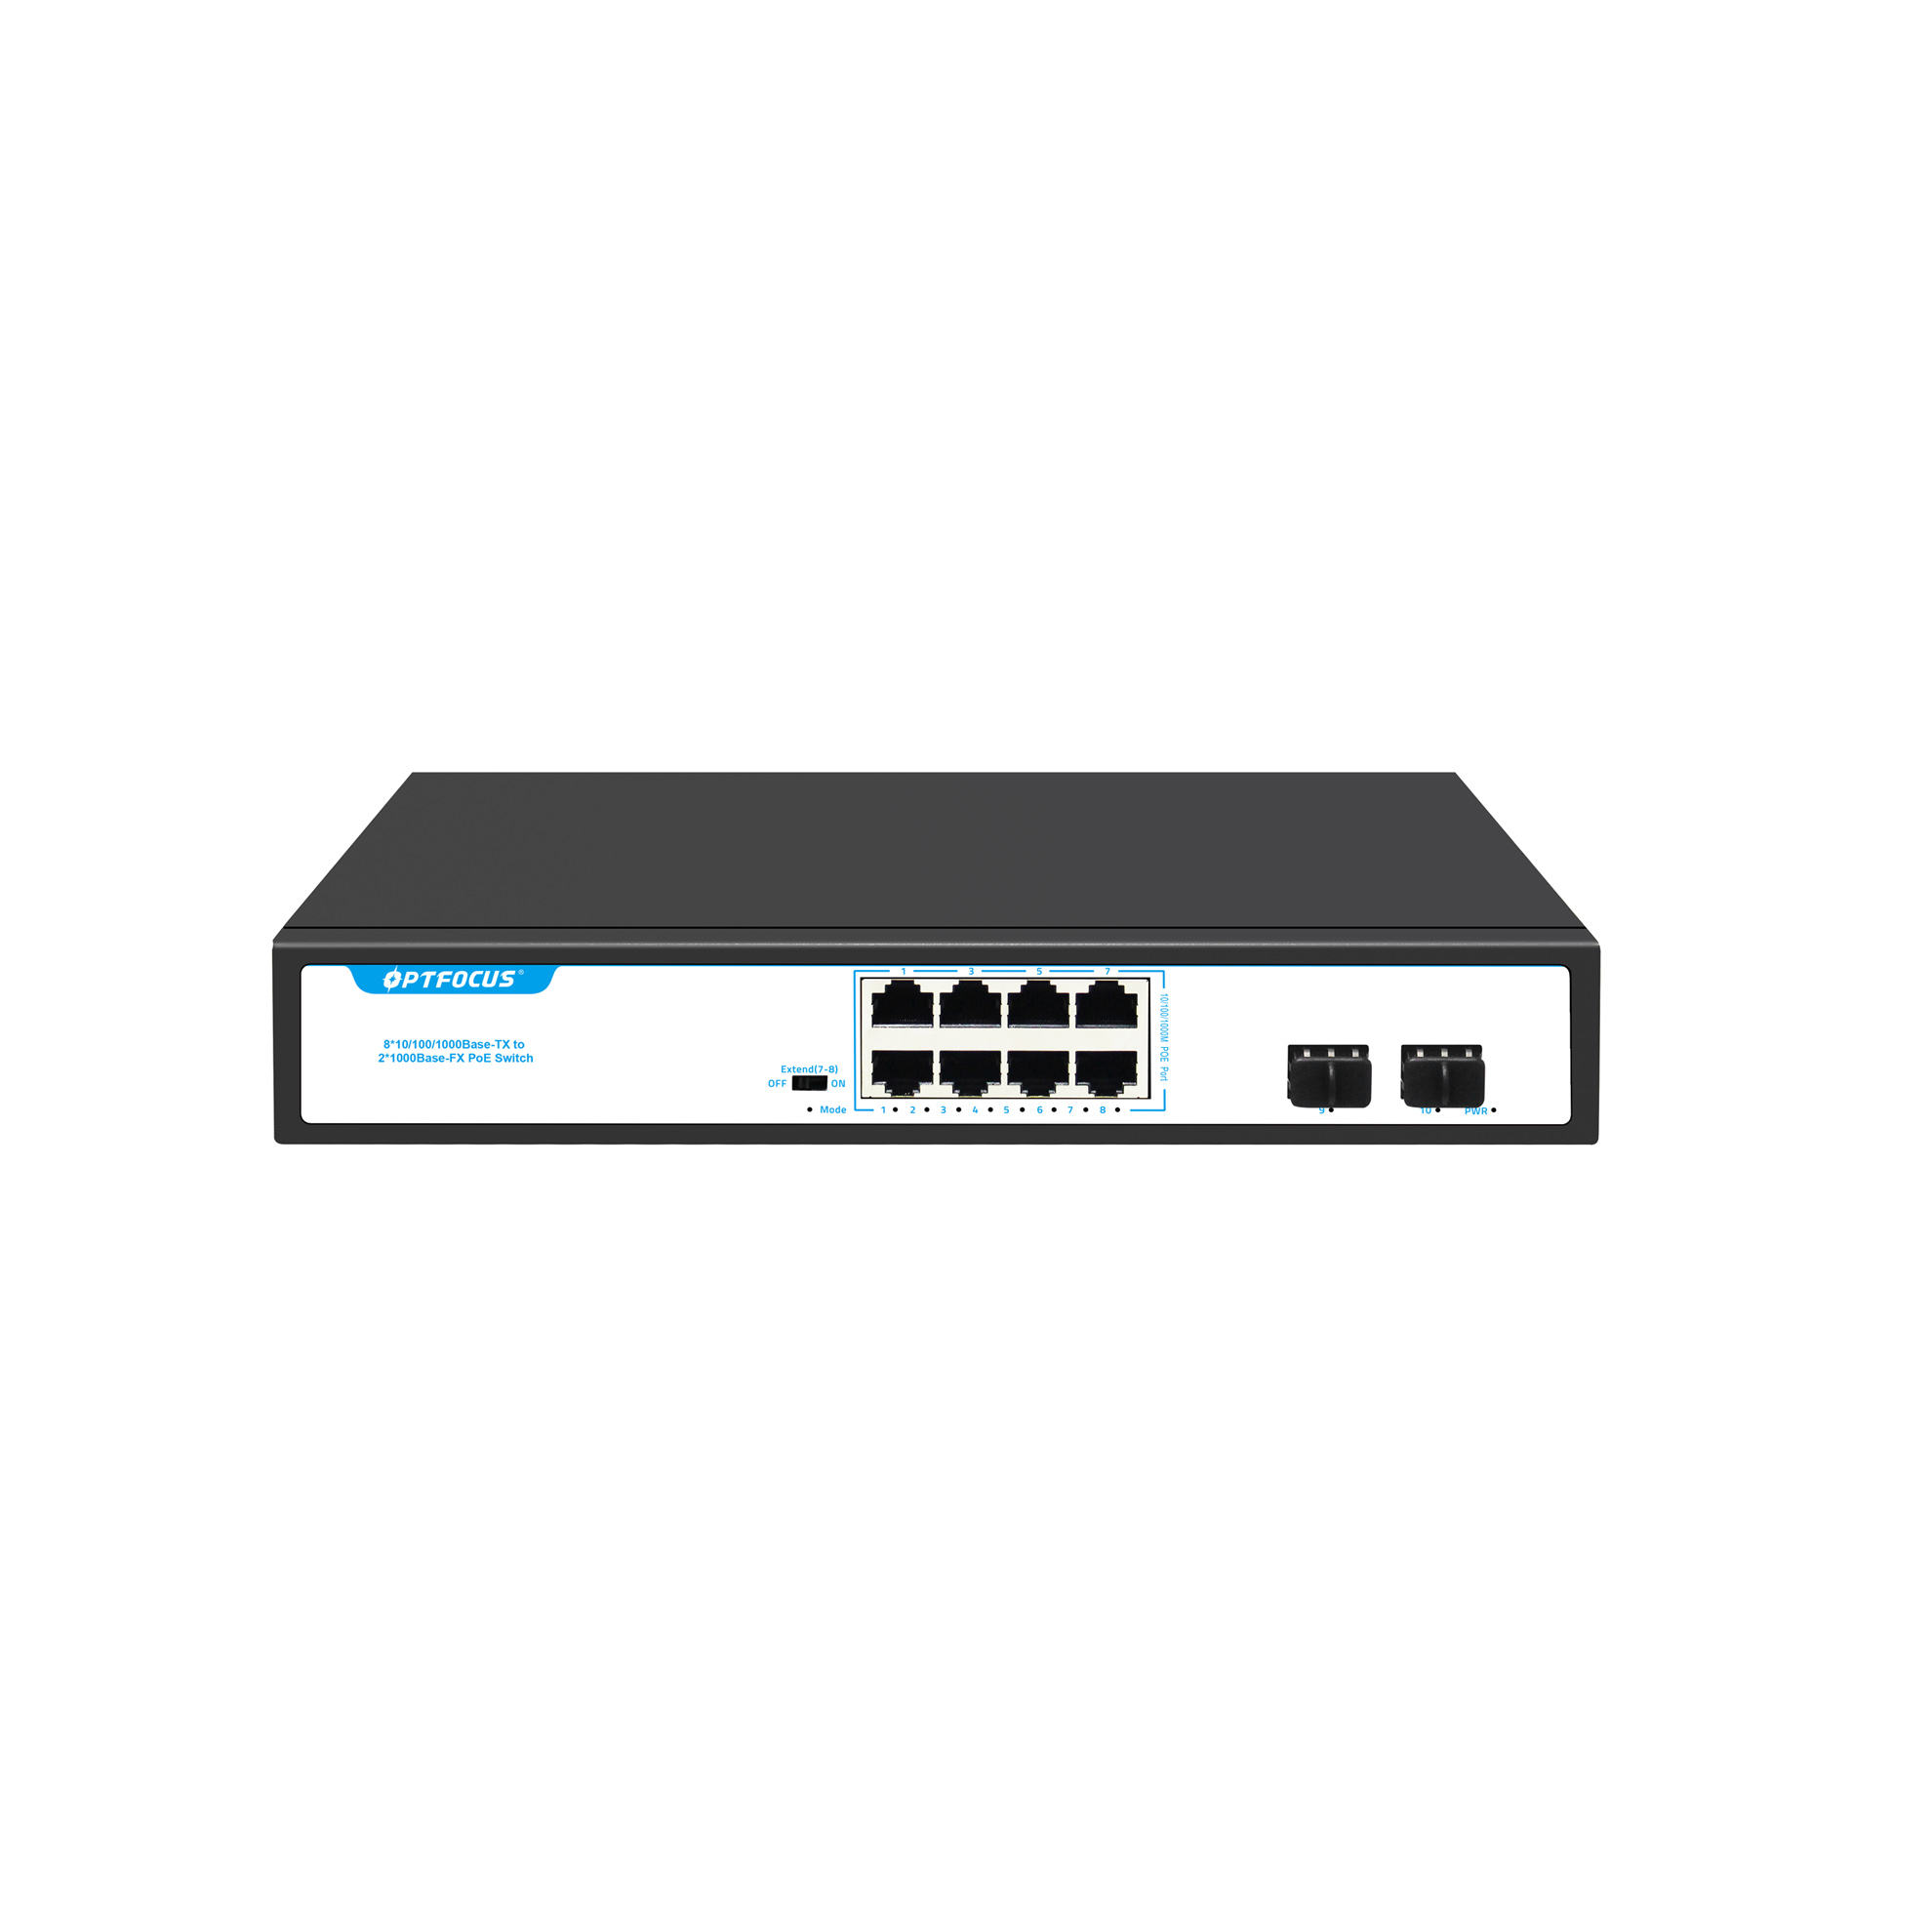 High Quality with 2 Gigabit SFP Slots 10 port poe d link onv poe switch network